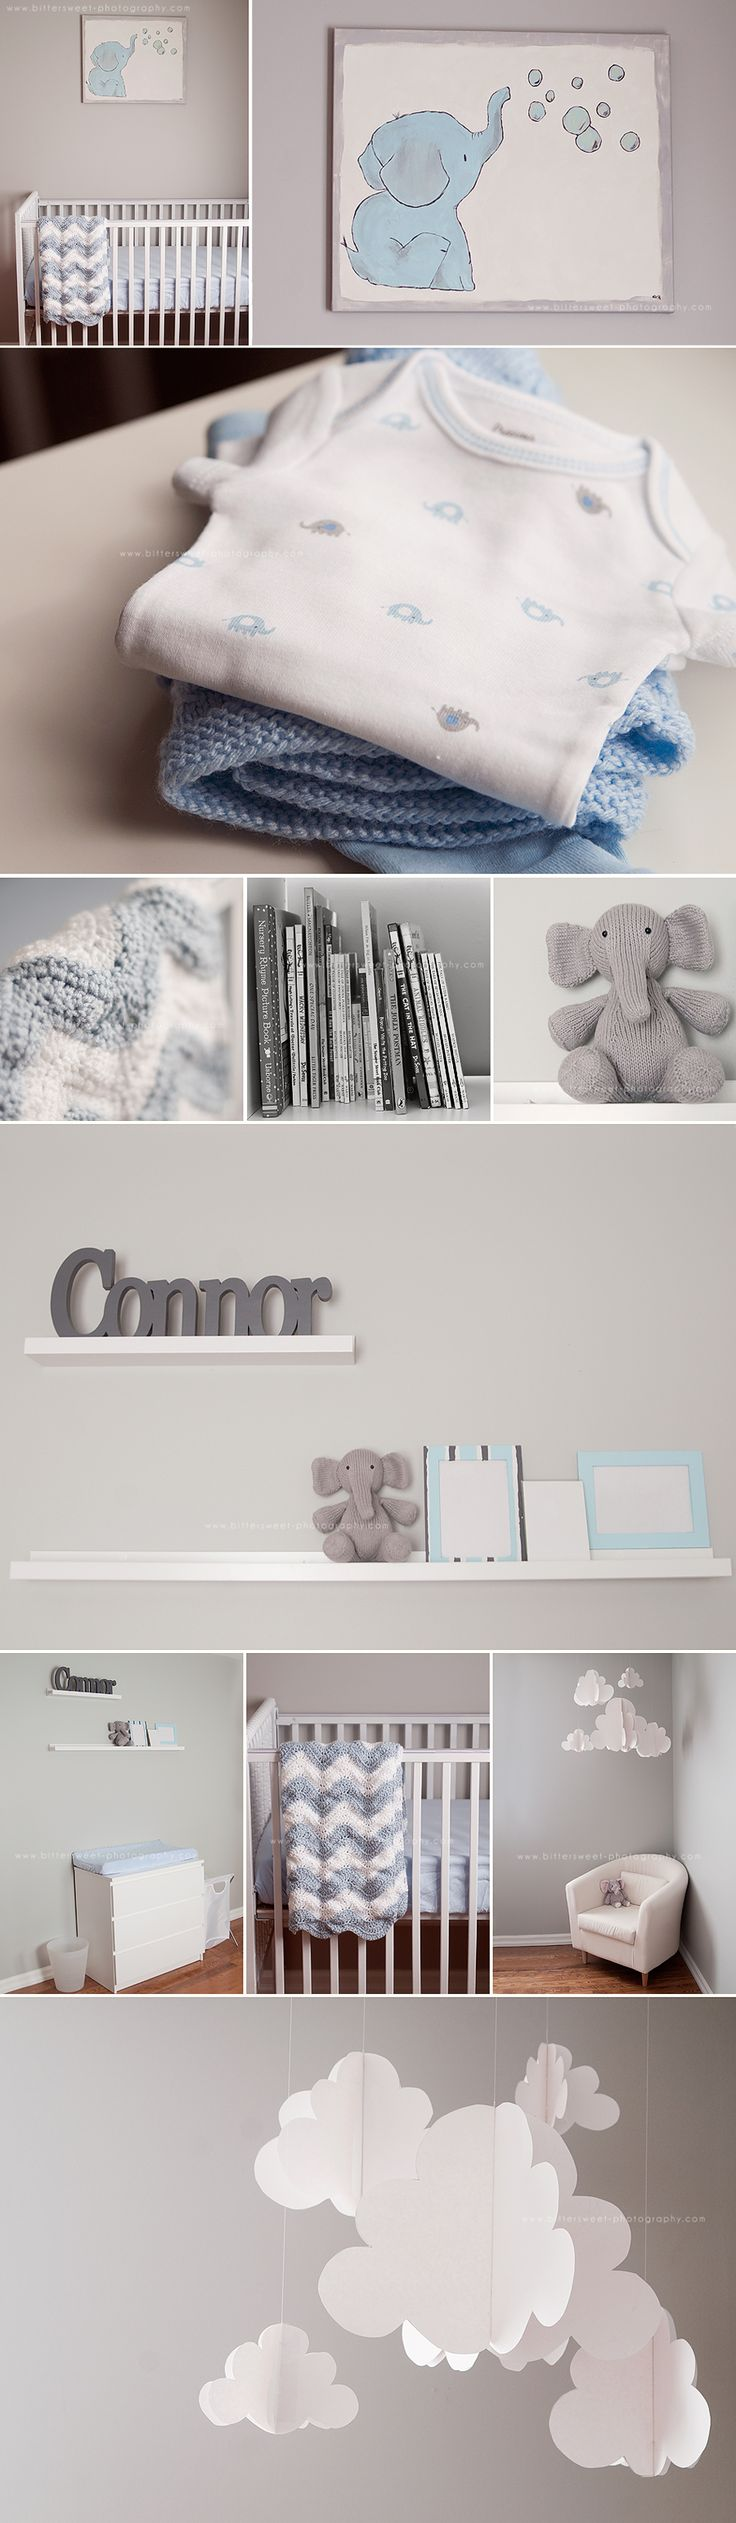 Baby Boy Nursery - It needs more baby blue in the coloring to cheer things up a bit. Love the clouds and elephants.....I already know what I want to do for a boy nursery but this is sooooooo darn cute!!!